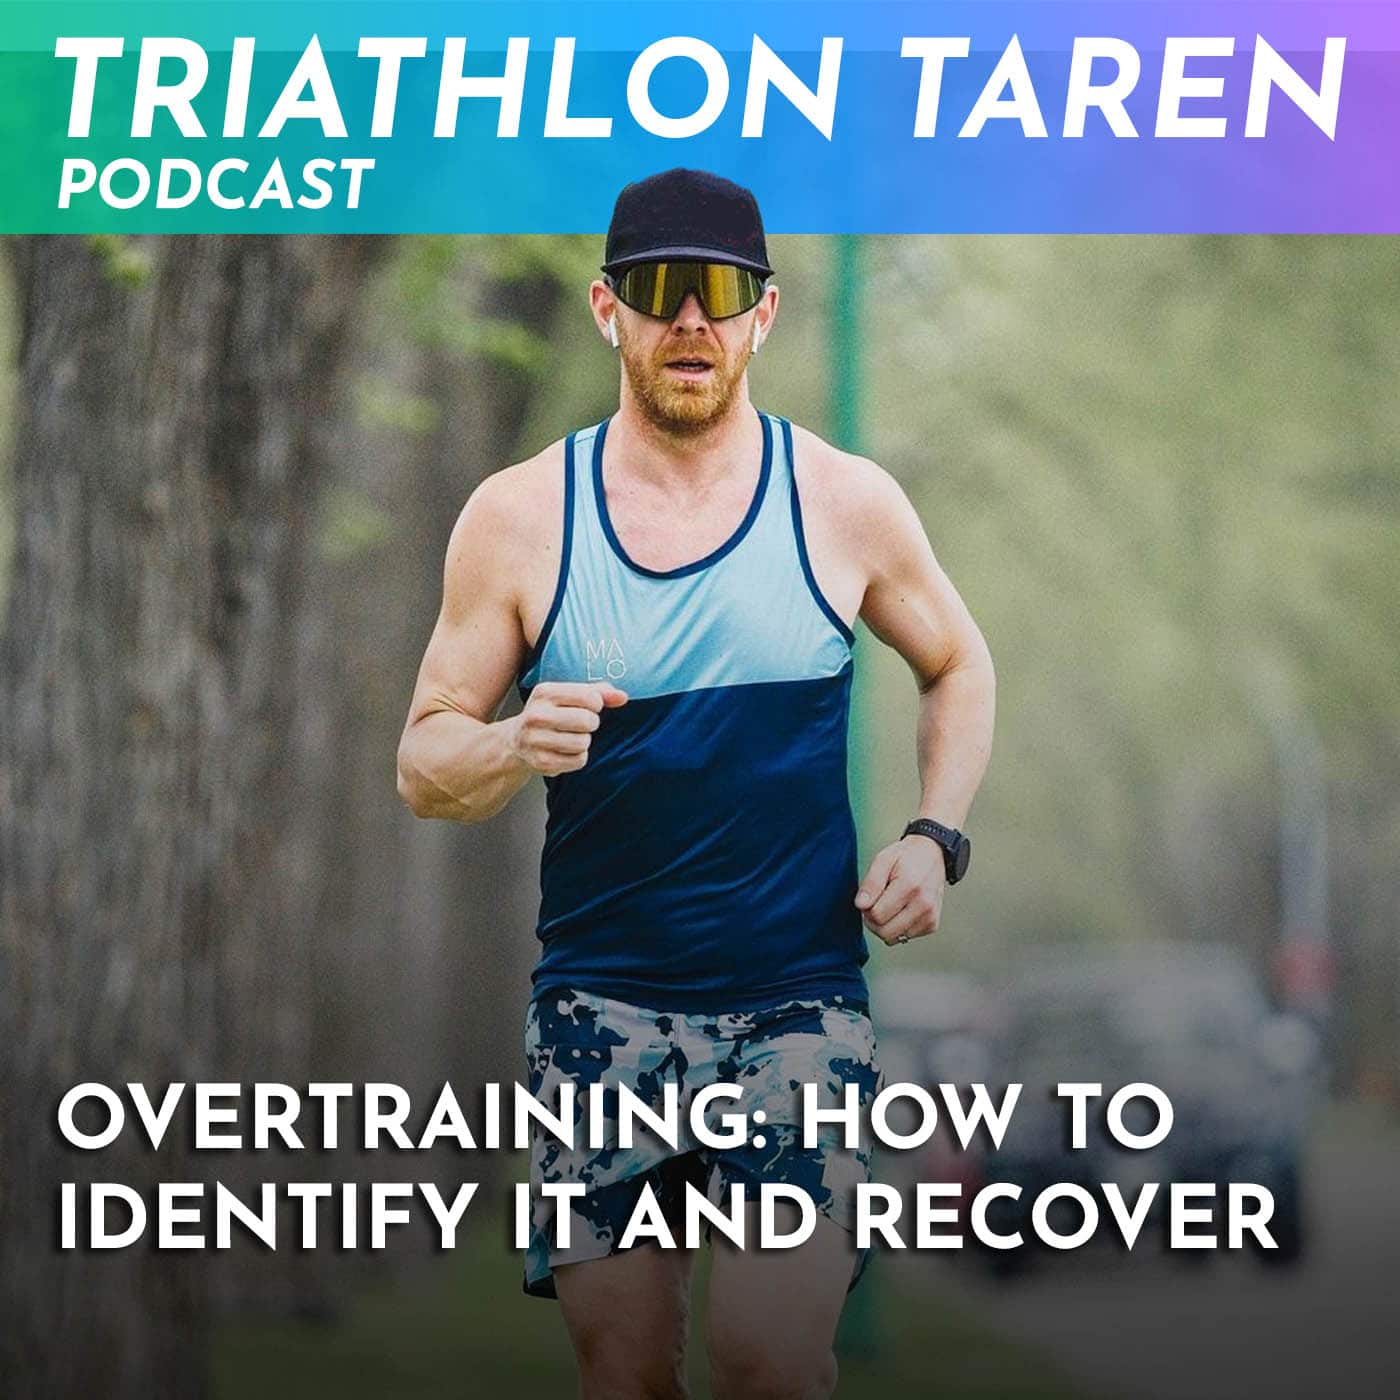 Overtraining: How to Identify it and recover